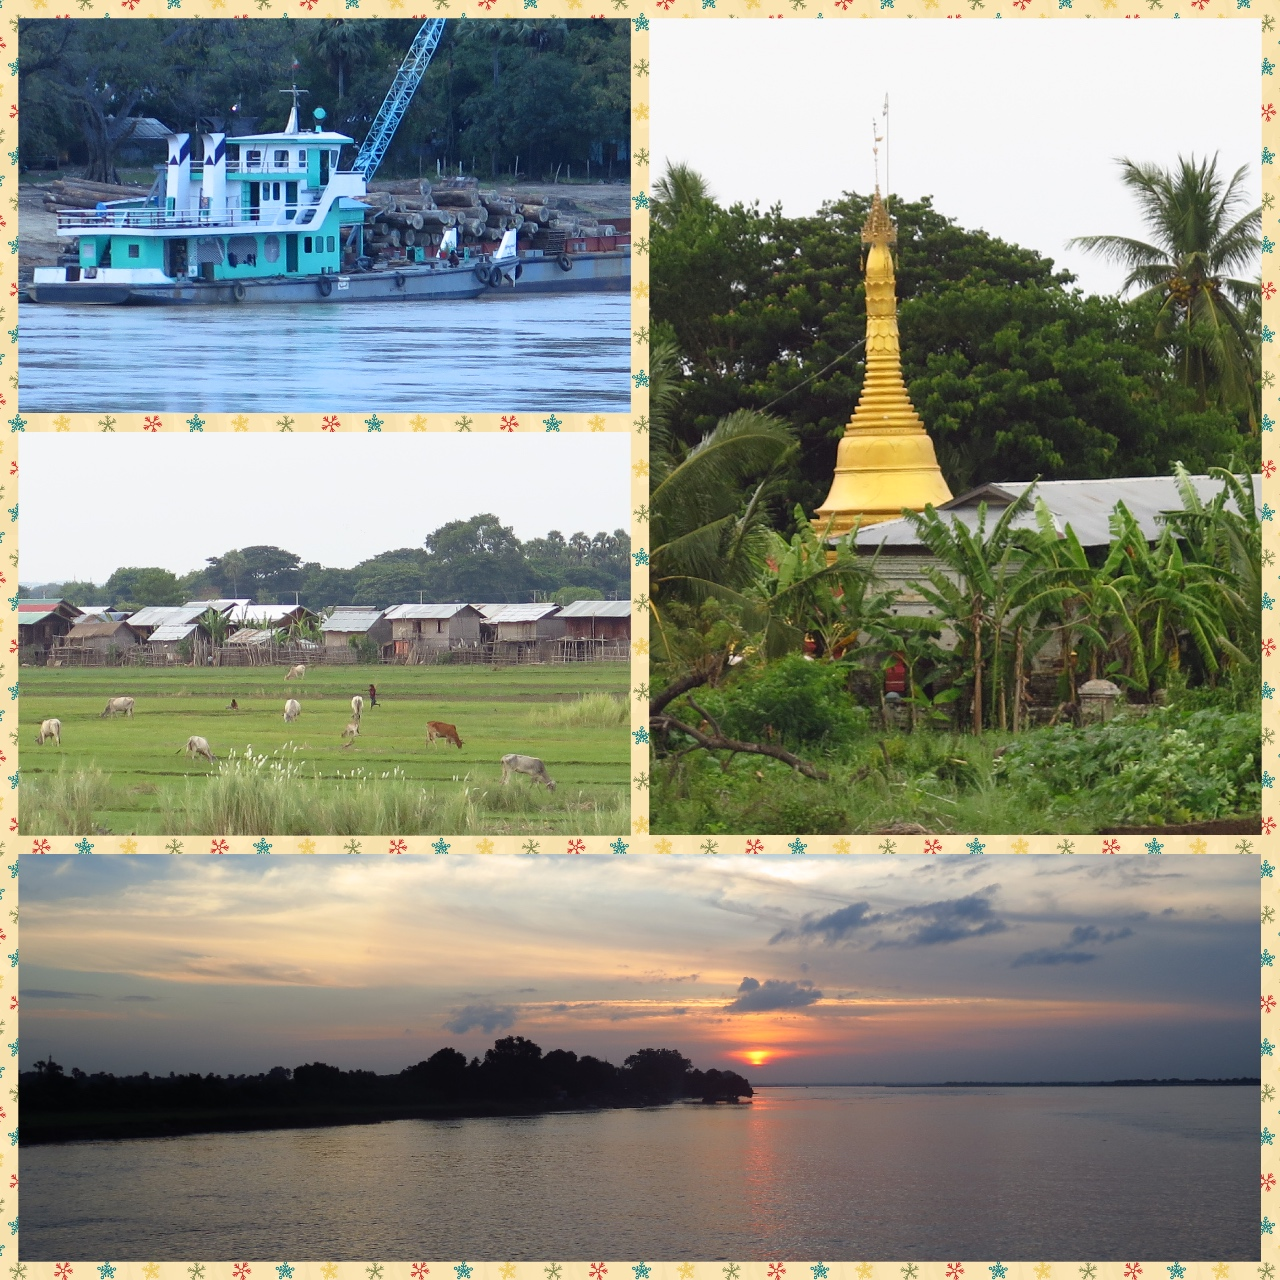 While on the cruise from Innwa to Bagan, one is treated to views of life along the shores of the Irrawady. Every little village has its own humble Paya, Tugs carrying timber, Livestock and of course a glorious sunset view every single day.